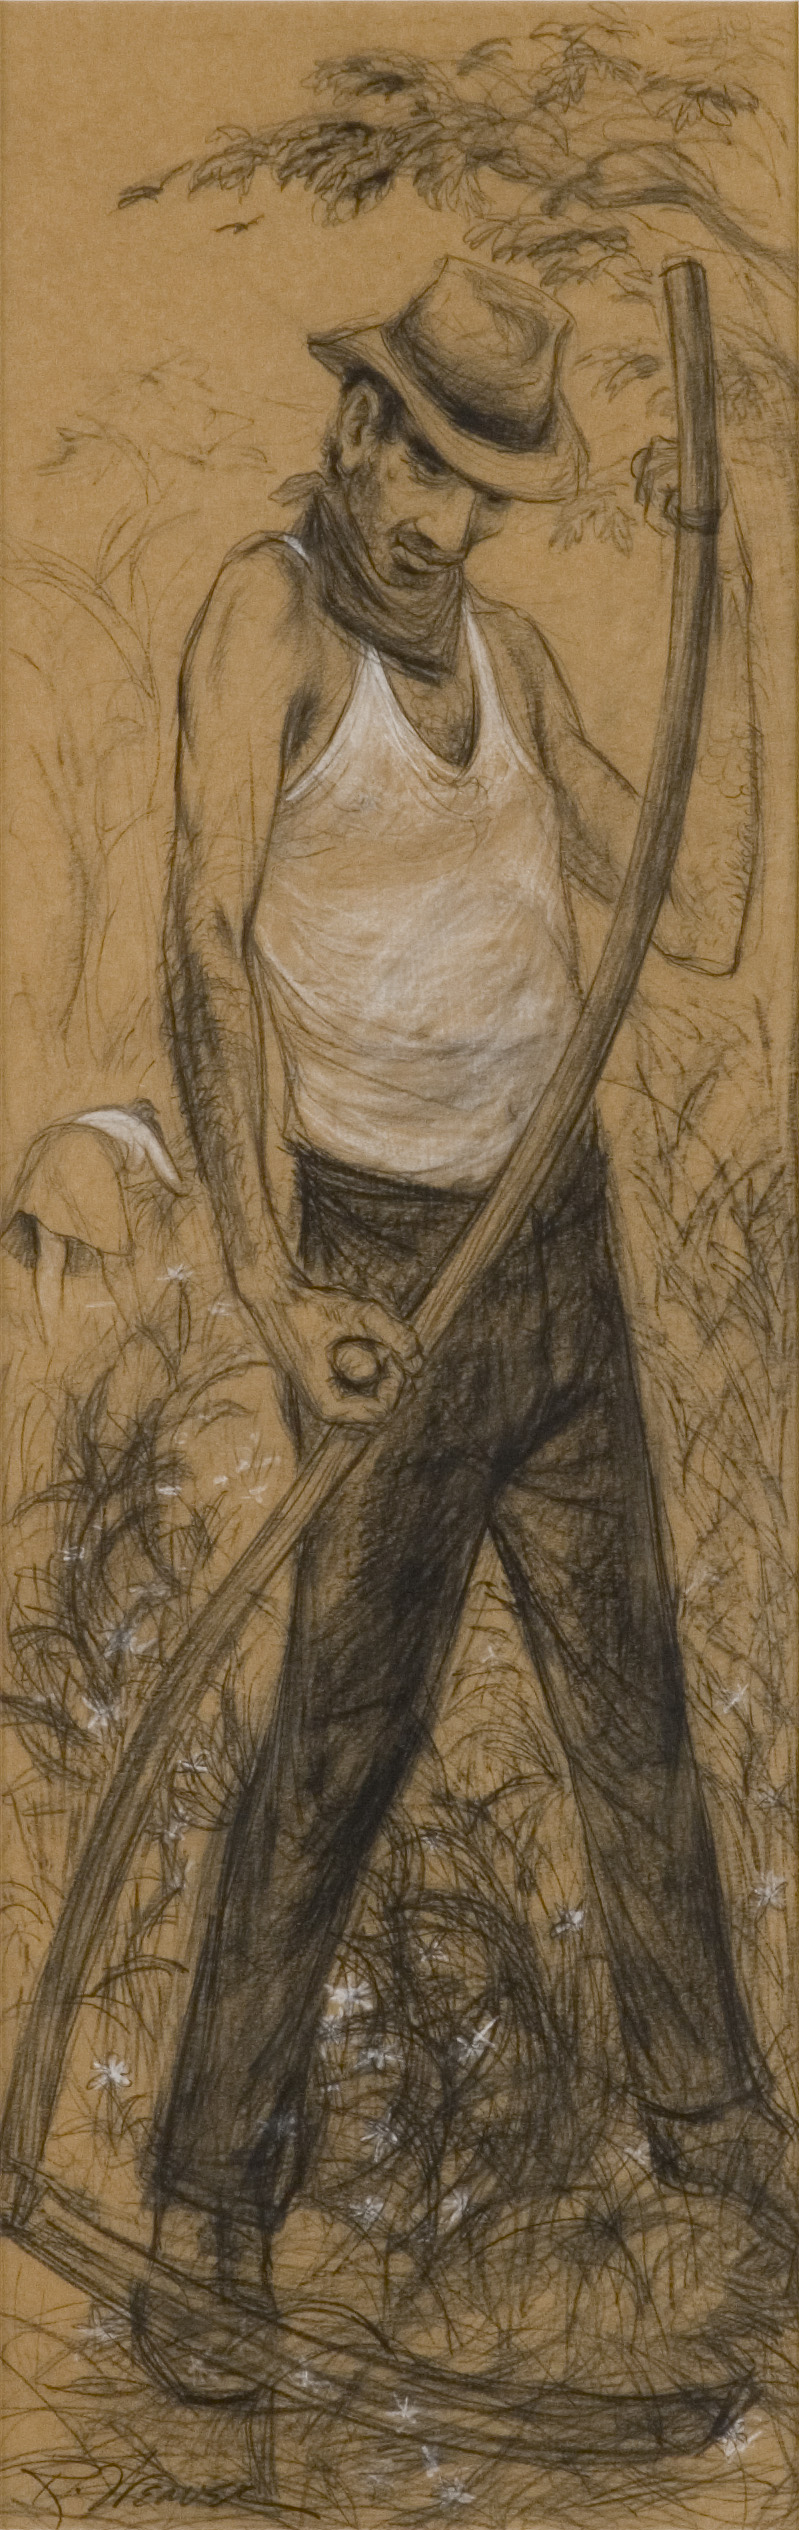 """Man with Scythe"" c. 1950*"